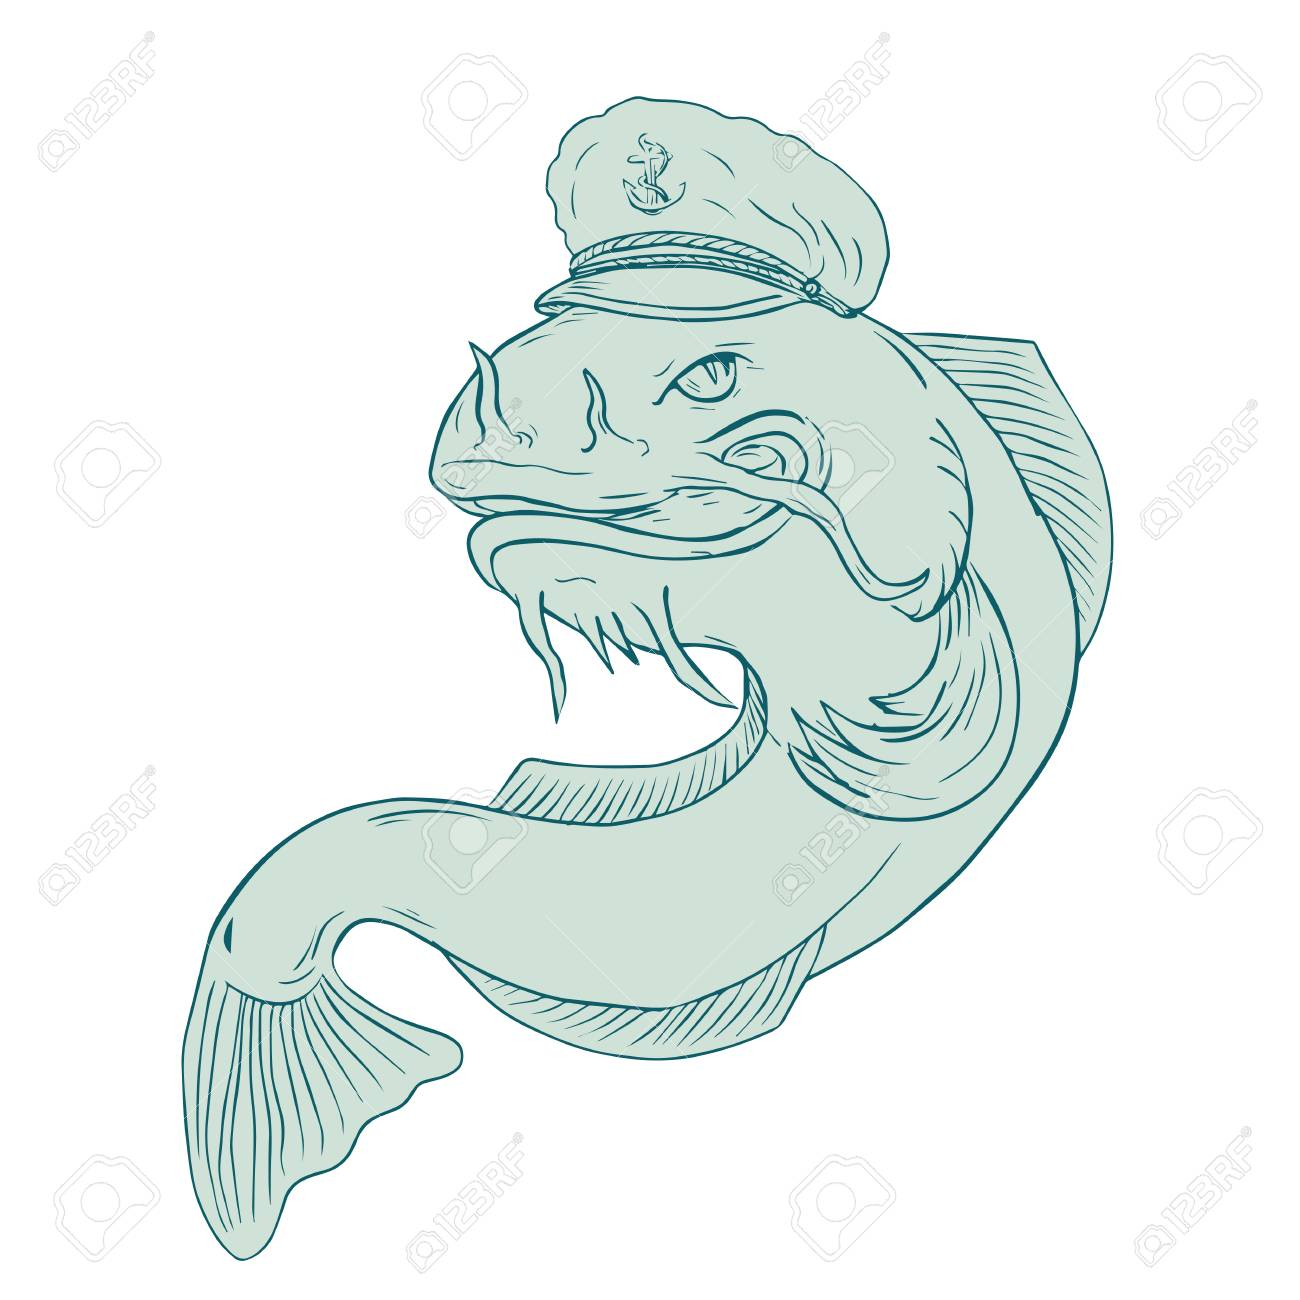 Drawing sketch style illustration of a catfish wearing sea captain